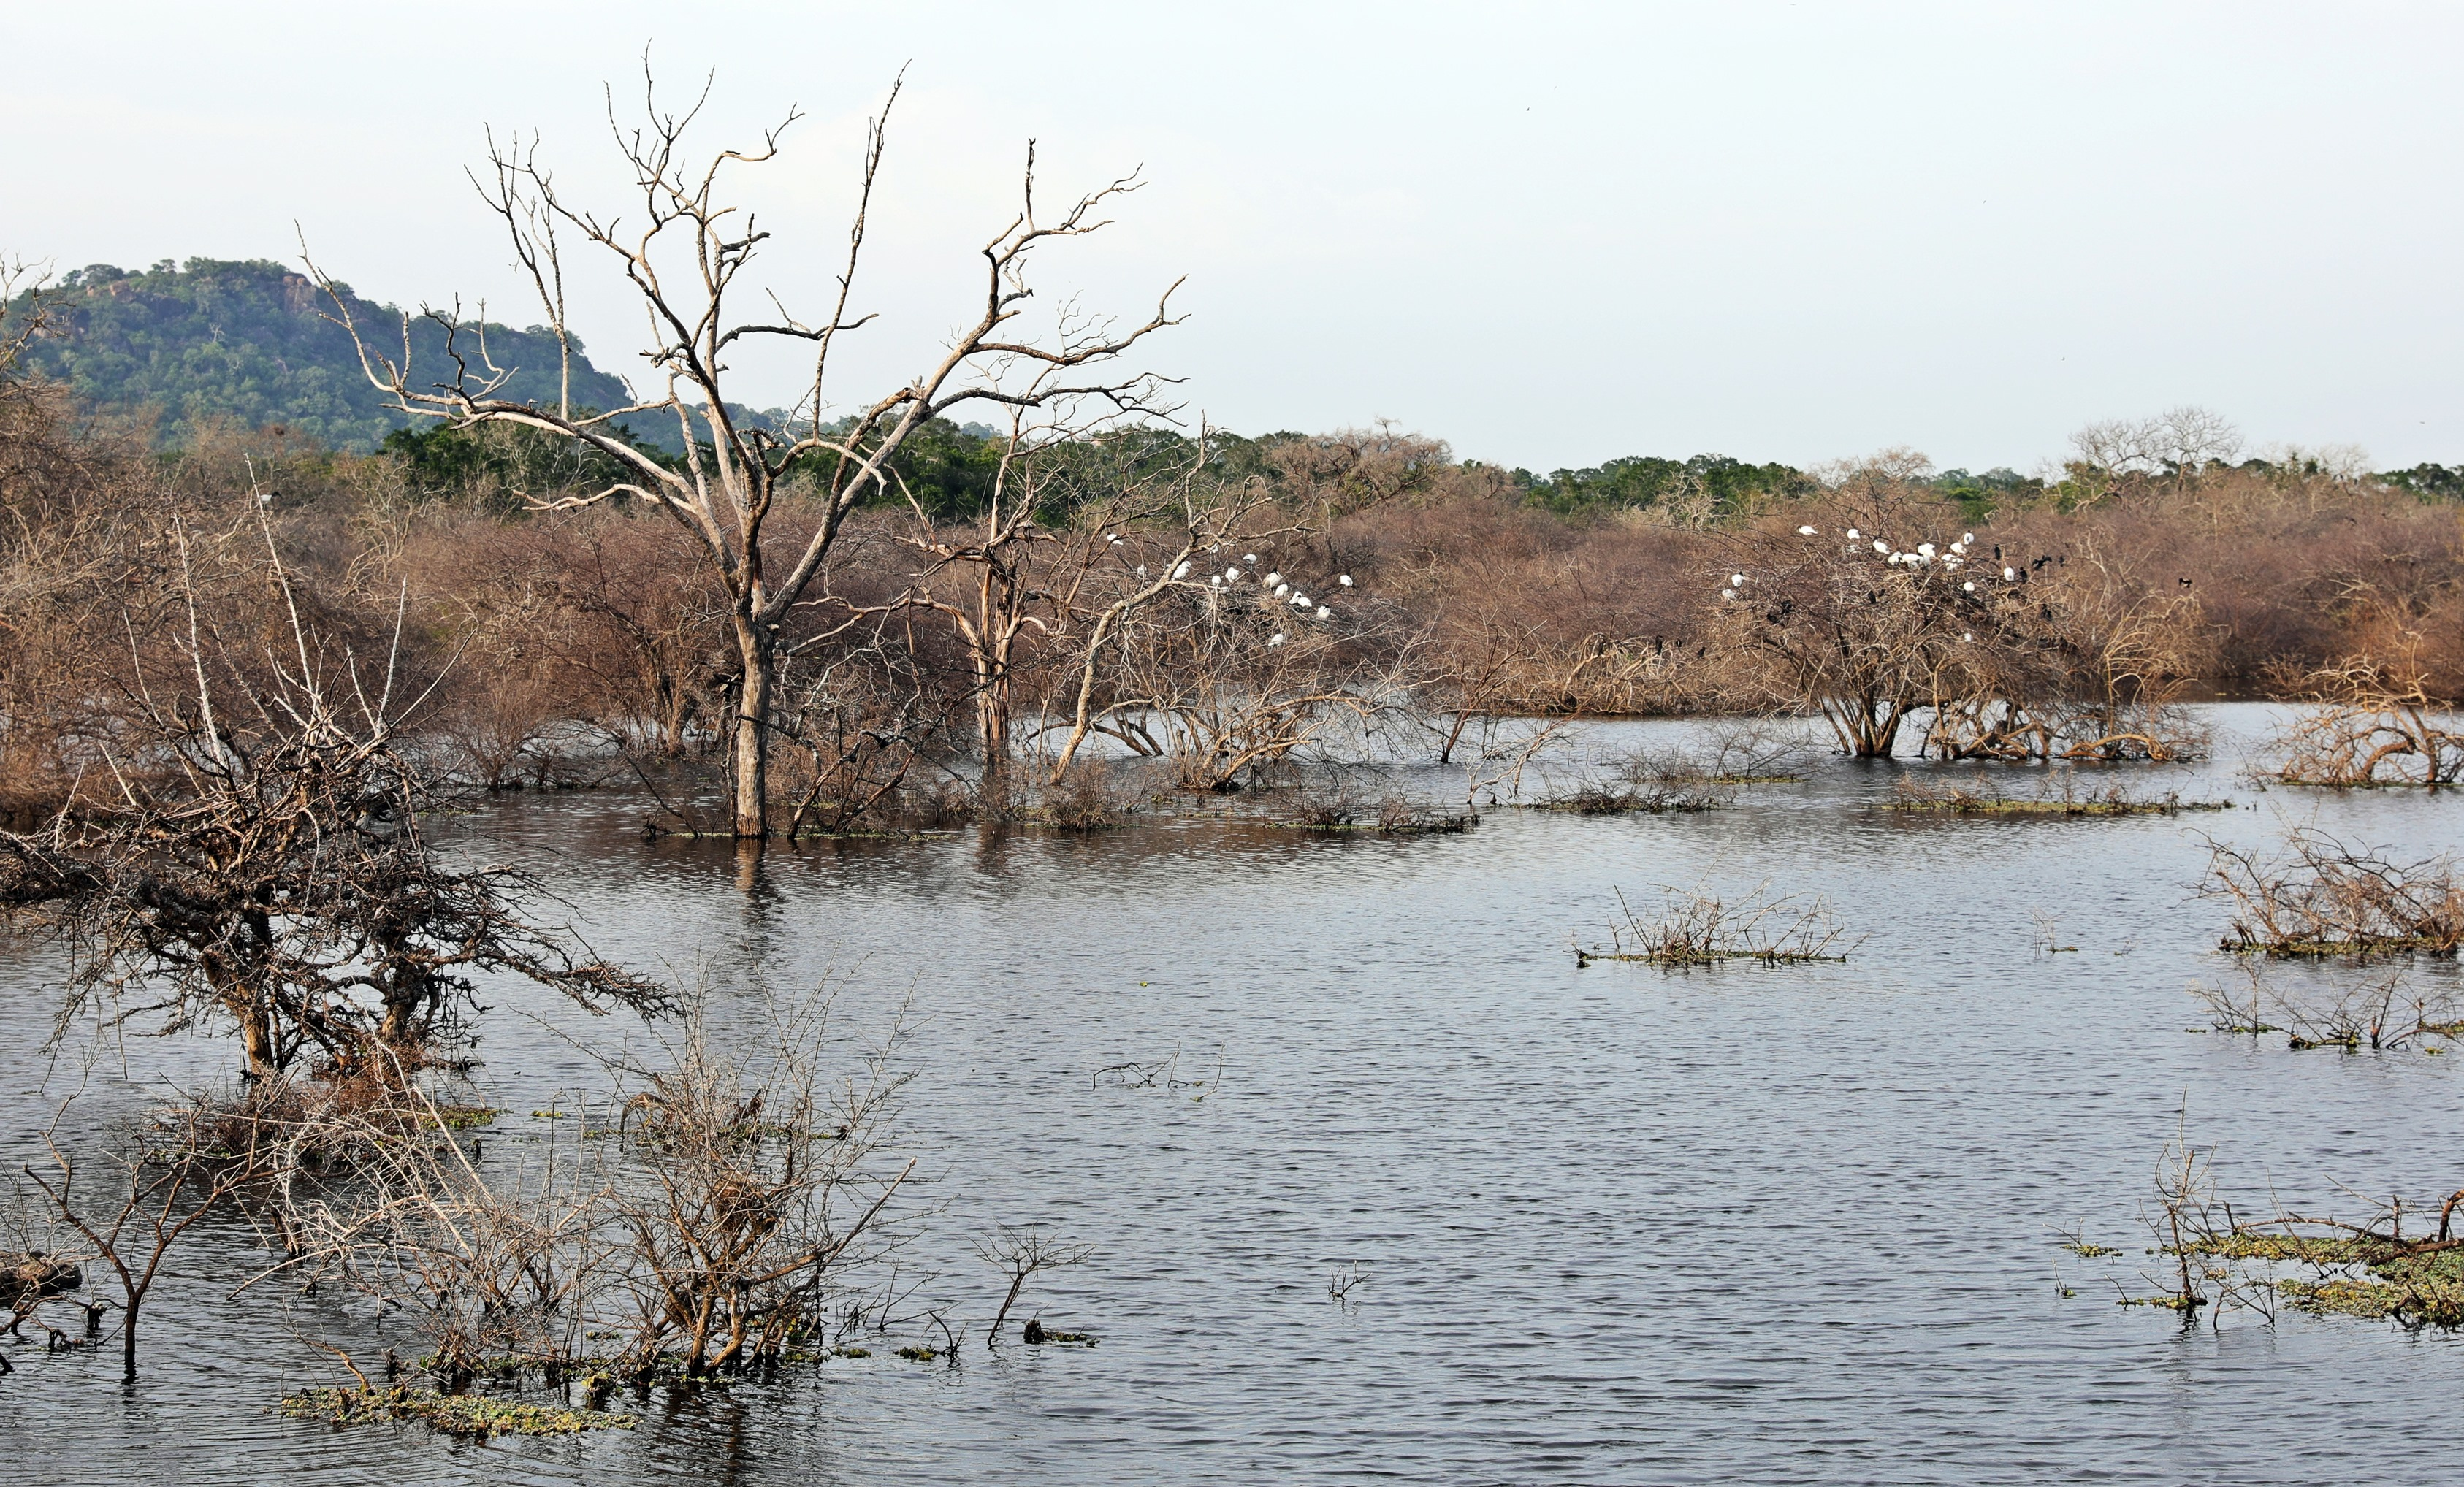 Lagoon with many water birds, Yala National Park